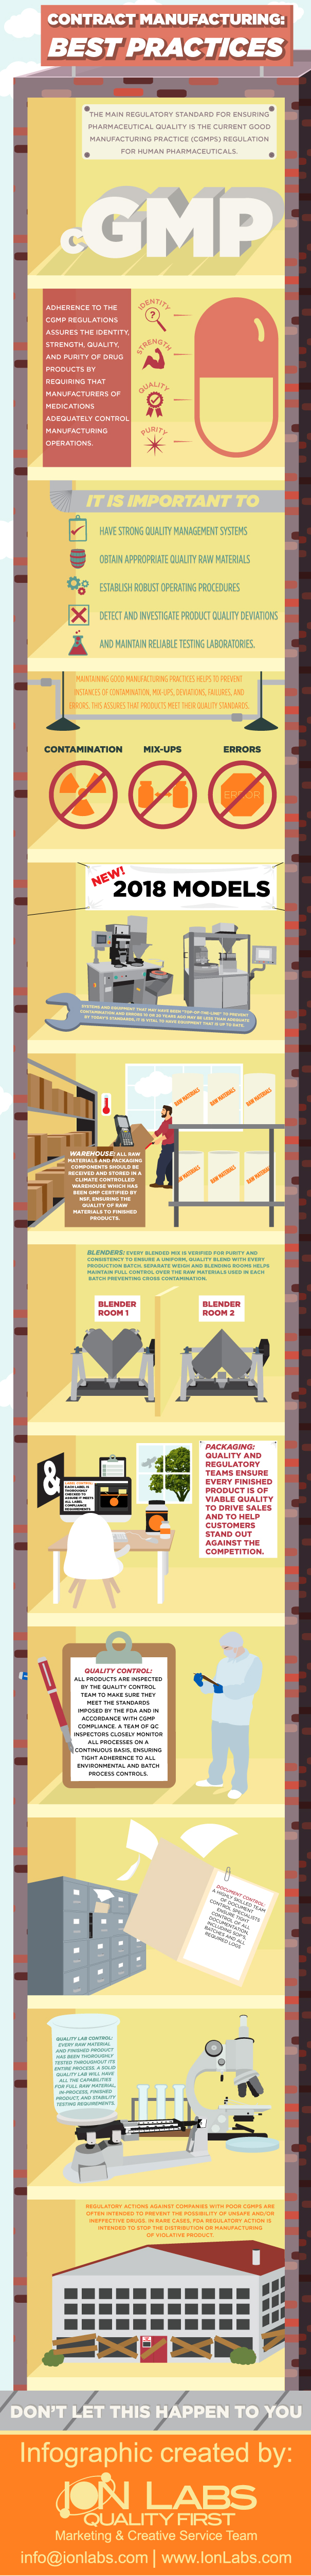 Contract Manufacturing Best Practices [Infographic]